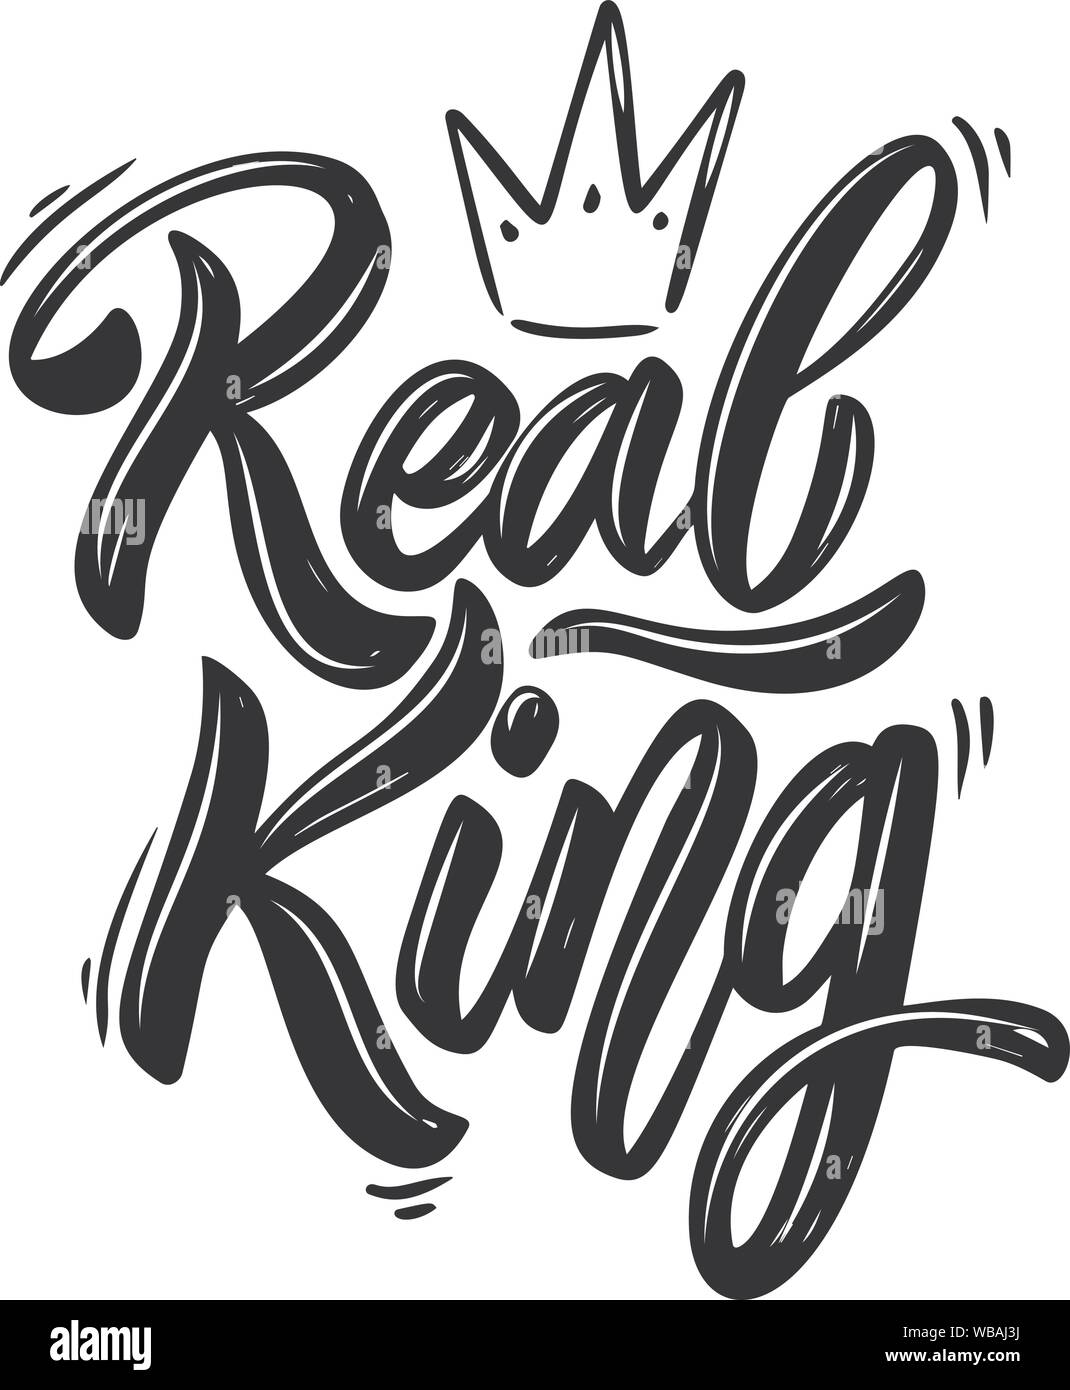 King Lettering : lettering, King., Lettering, Phrase, Crown, White, Background., Design, Element, Poster,, Banner,, Shirt,, Emblem., Vector, Illustration, Stock, Image, Alamy